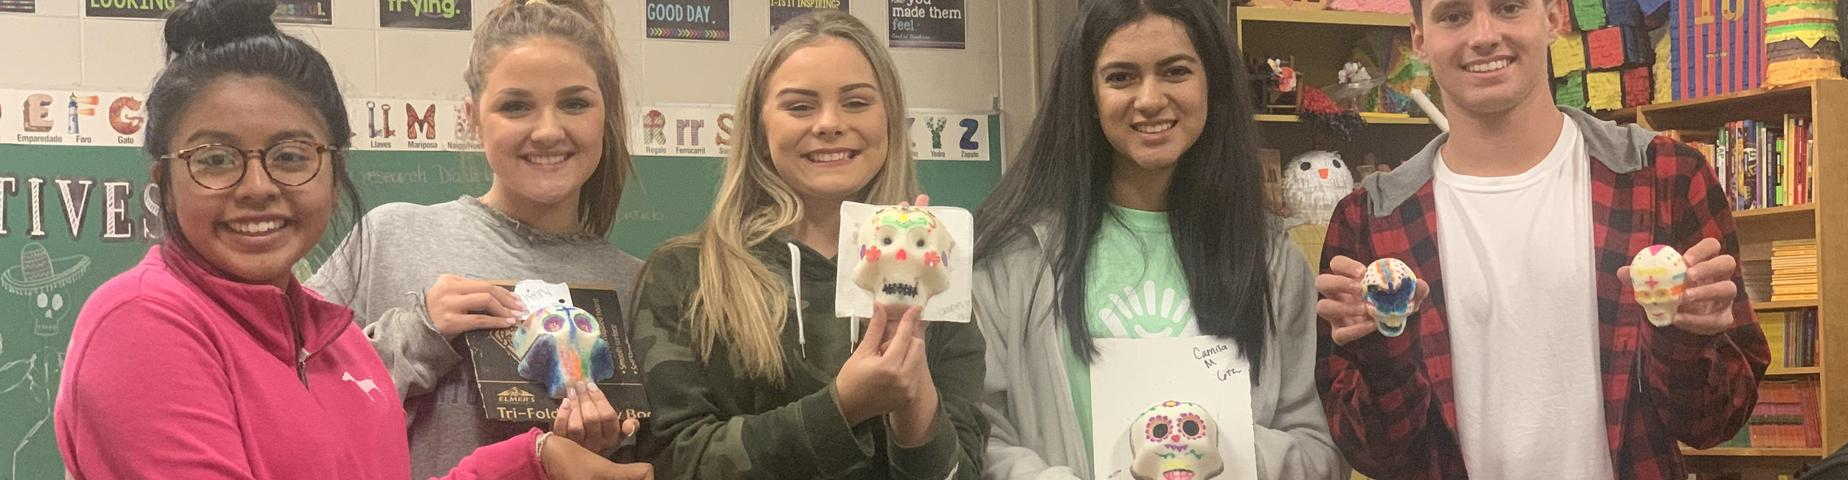 Students from Mayfield High School show off their sugar skulls, created in Mrs. Godinez's class for Dia de los Muertos!